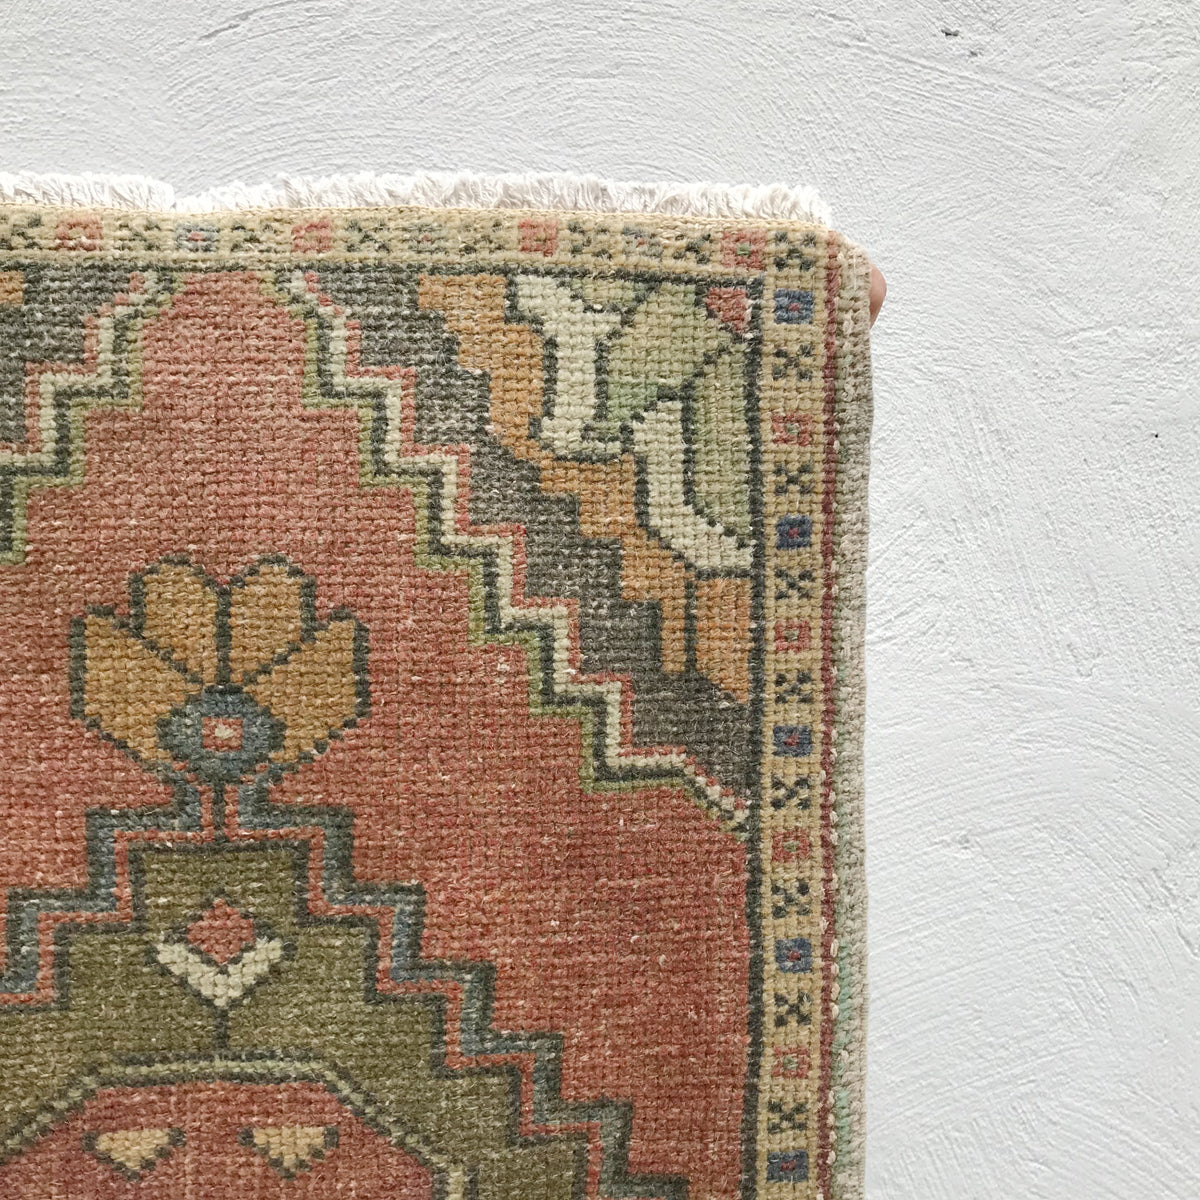 This small handwoven vintage Turkish rug has great muted colors. Great for entryways, bathrooms, kitchens and layering. 18.5x34 inches.